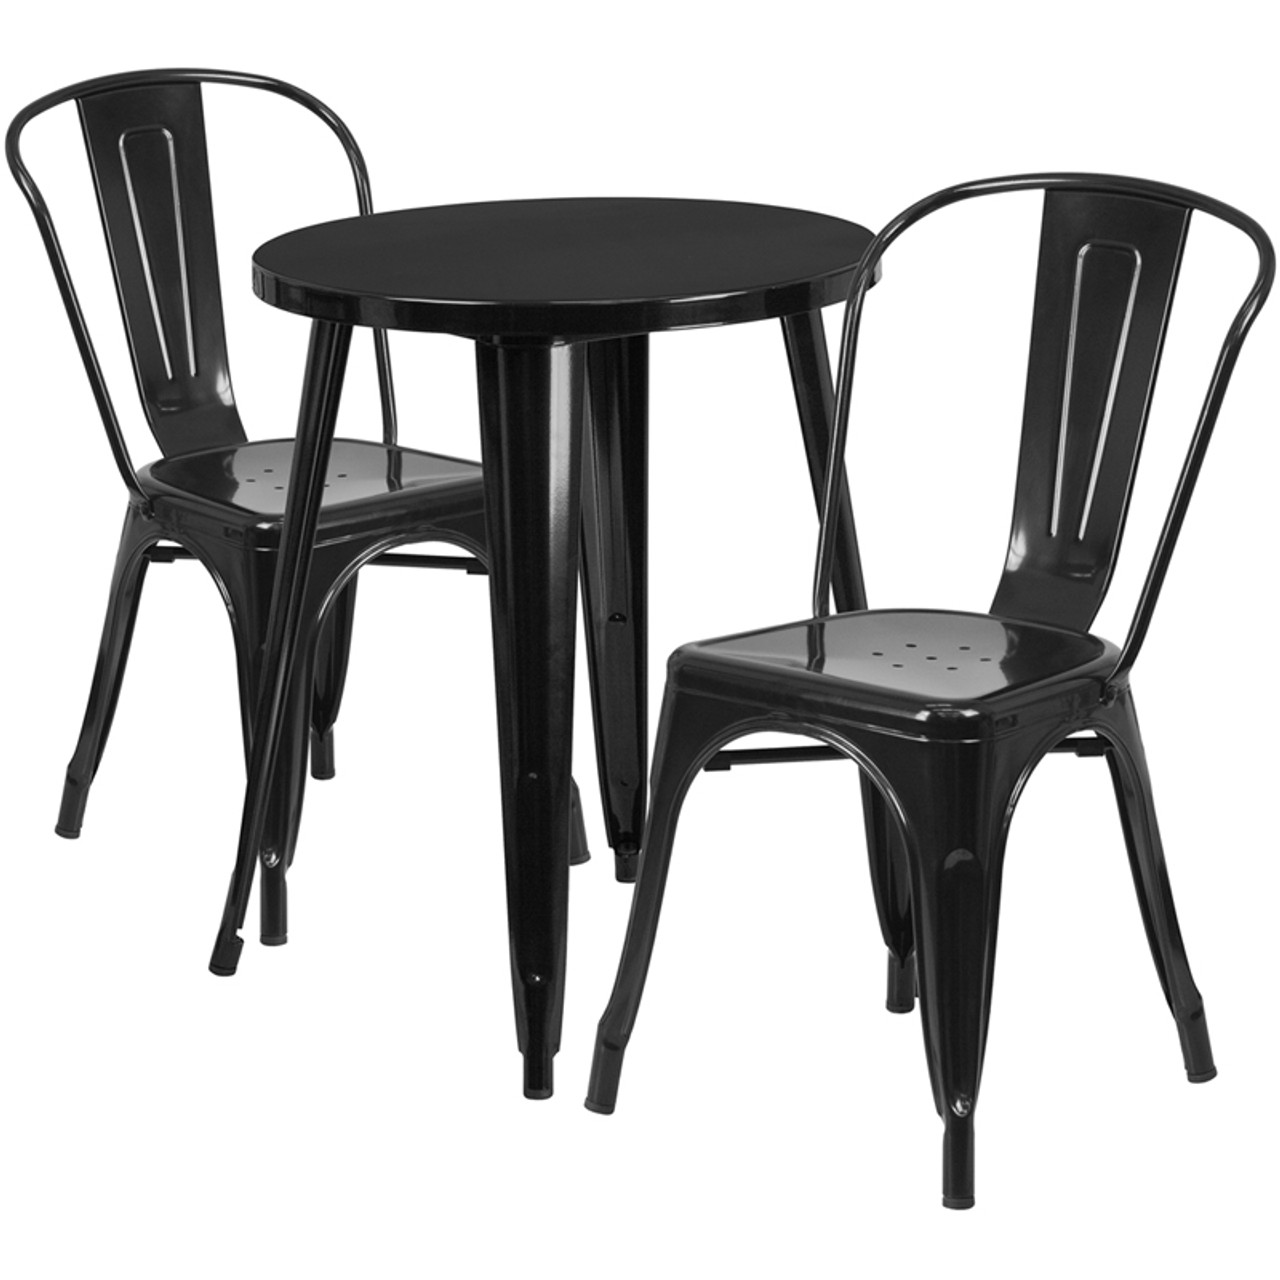 24 Round Black Metal Indoor Outdoor Table Set With 2 Cafe Chairs